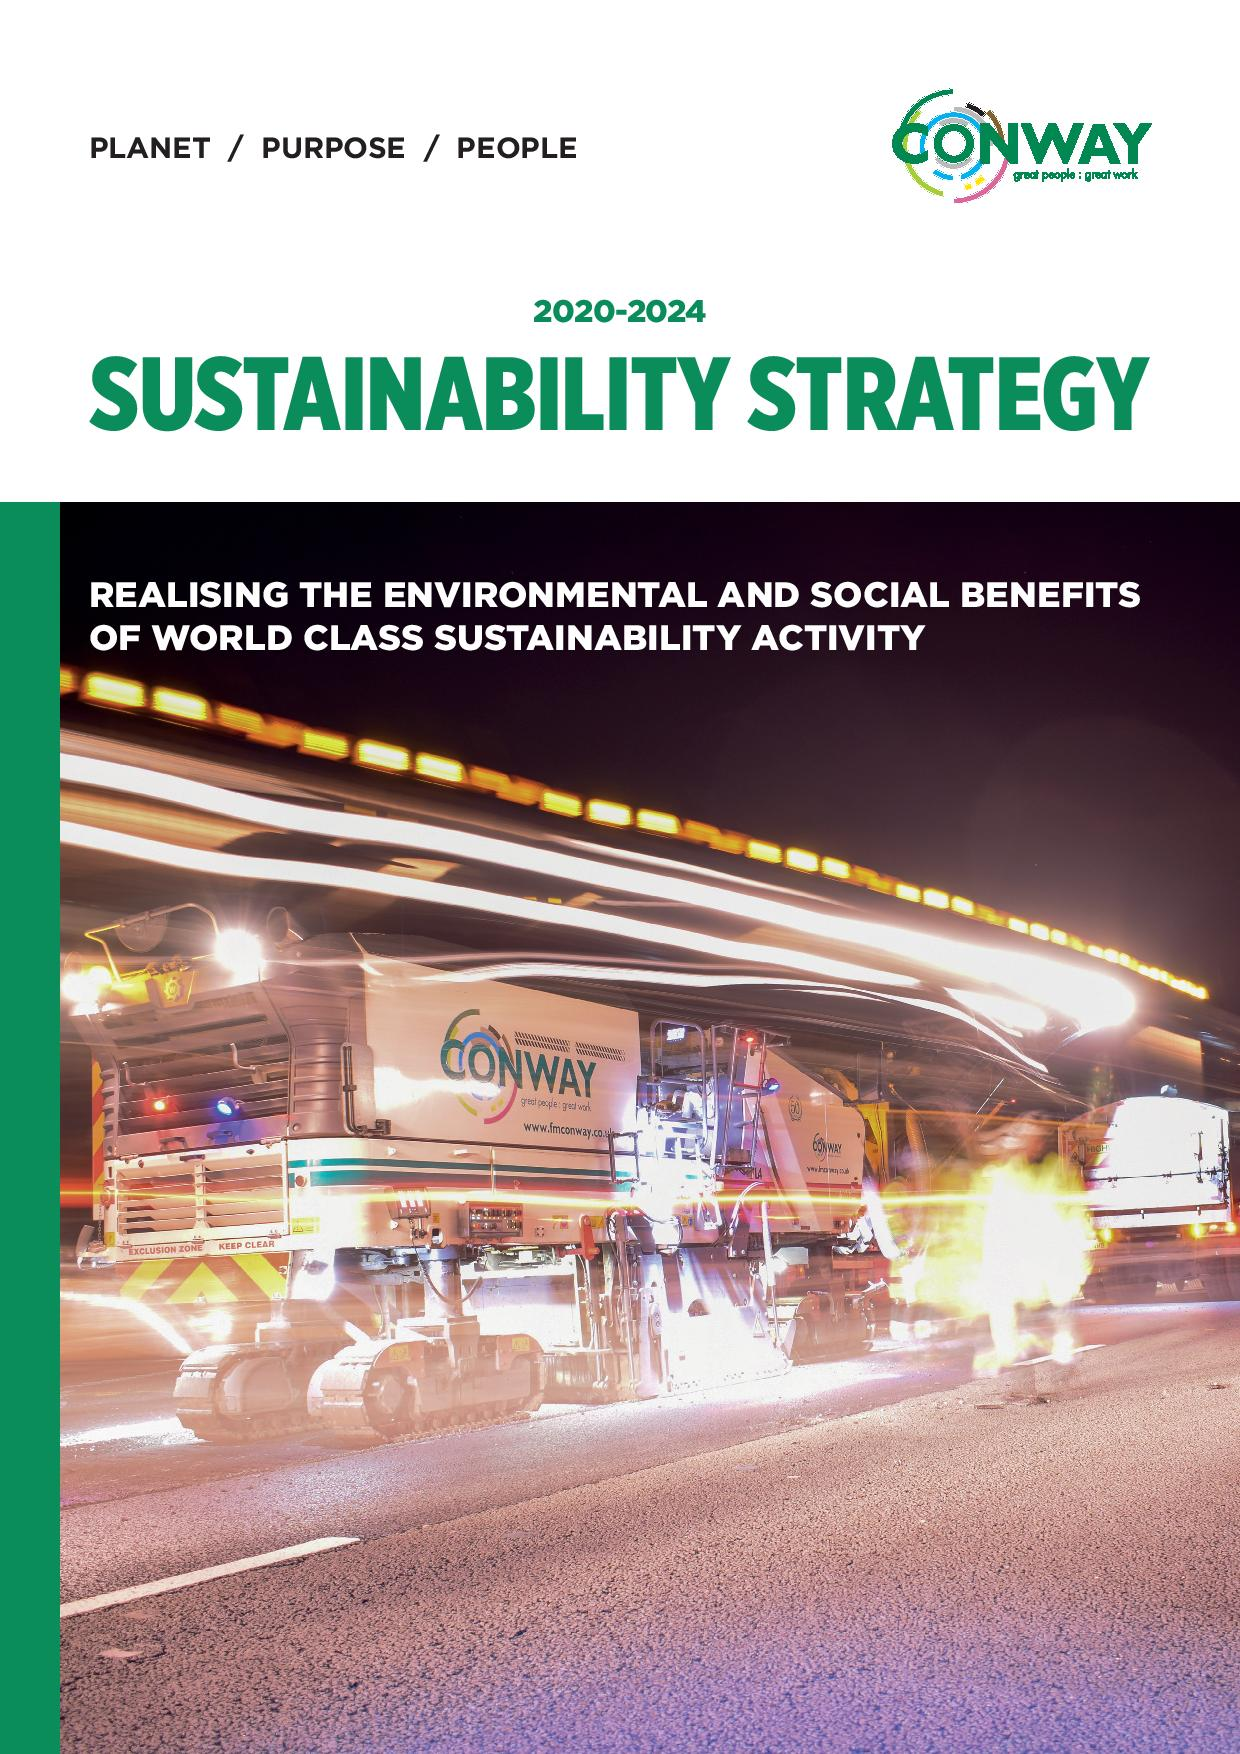 /files/library/images/Sustainability/Sustainability Strategy/Sustainability_Strategy-page-001.jpg